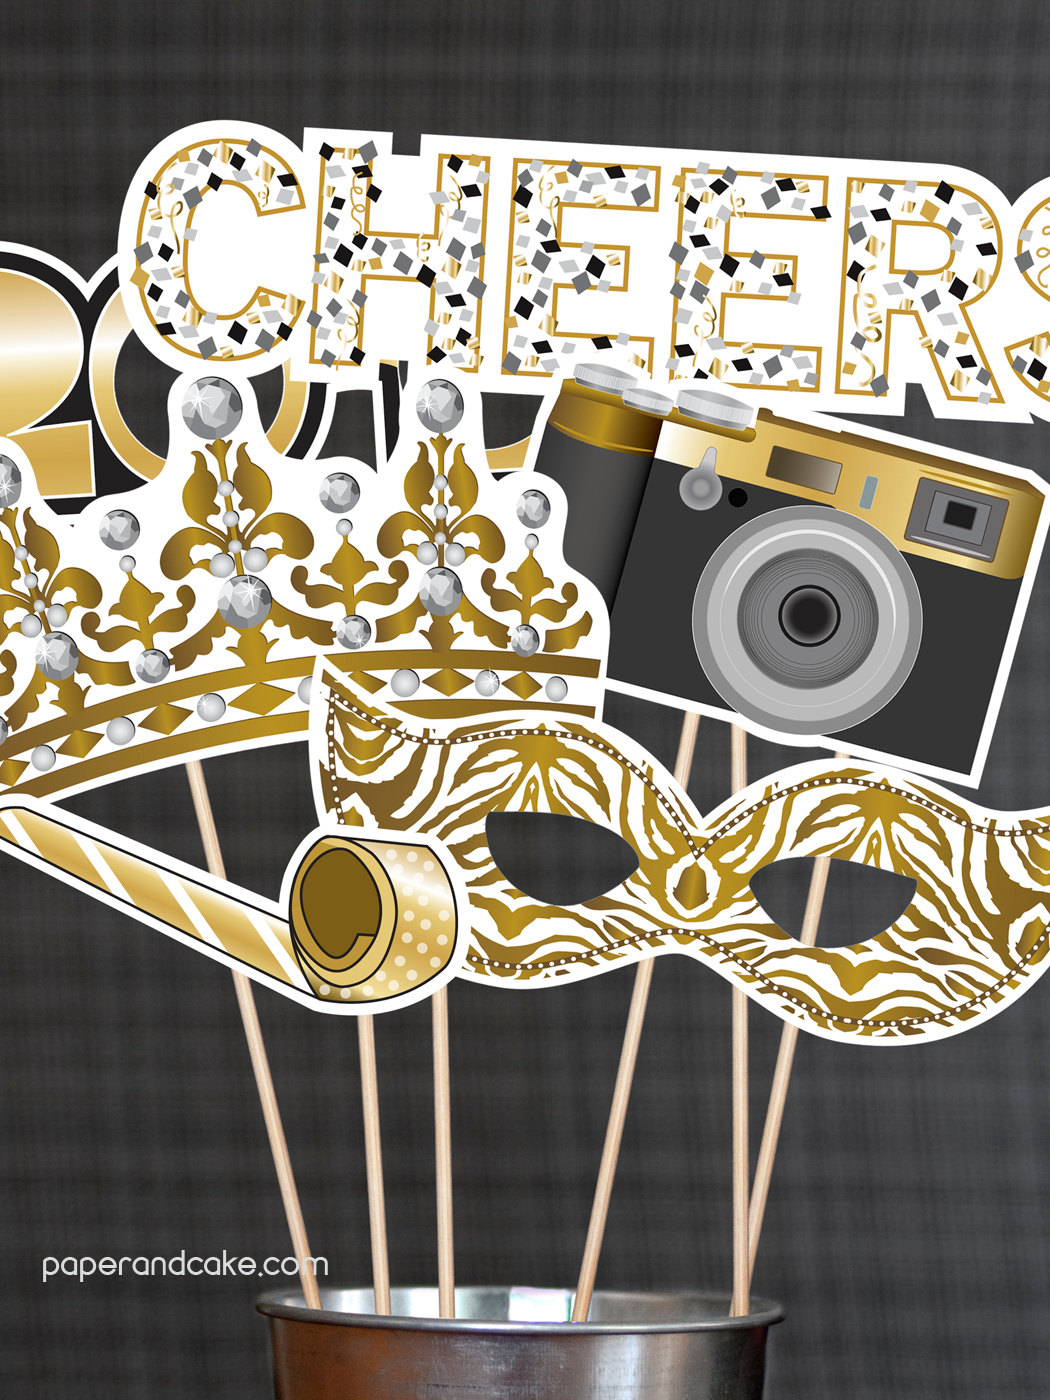 Printable 2017 New Year's Eve photo booth printables from Paper and Cake on Etsy